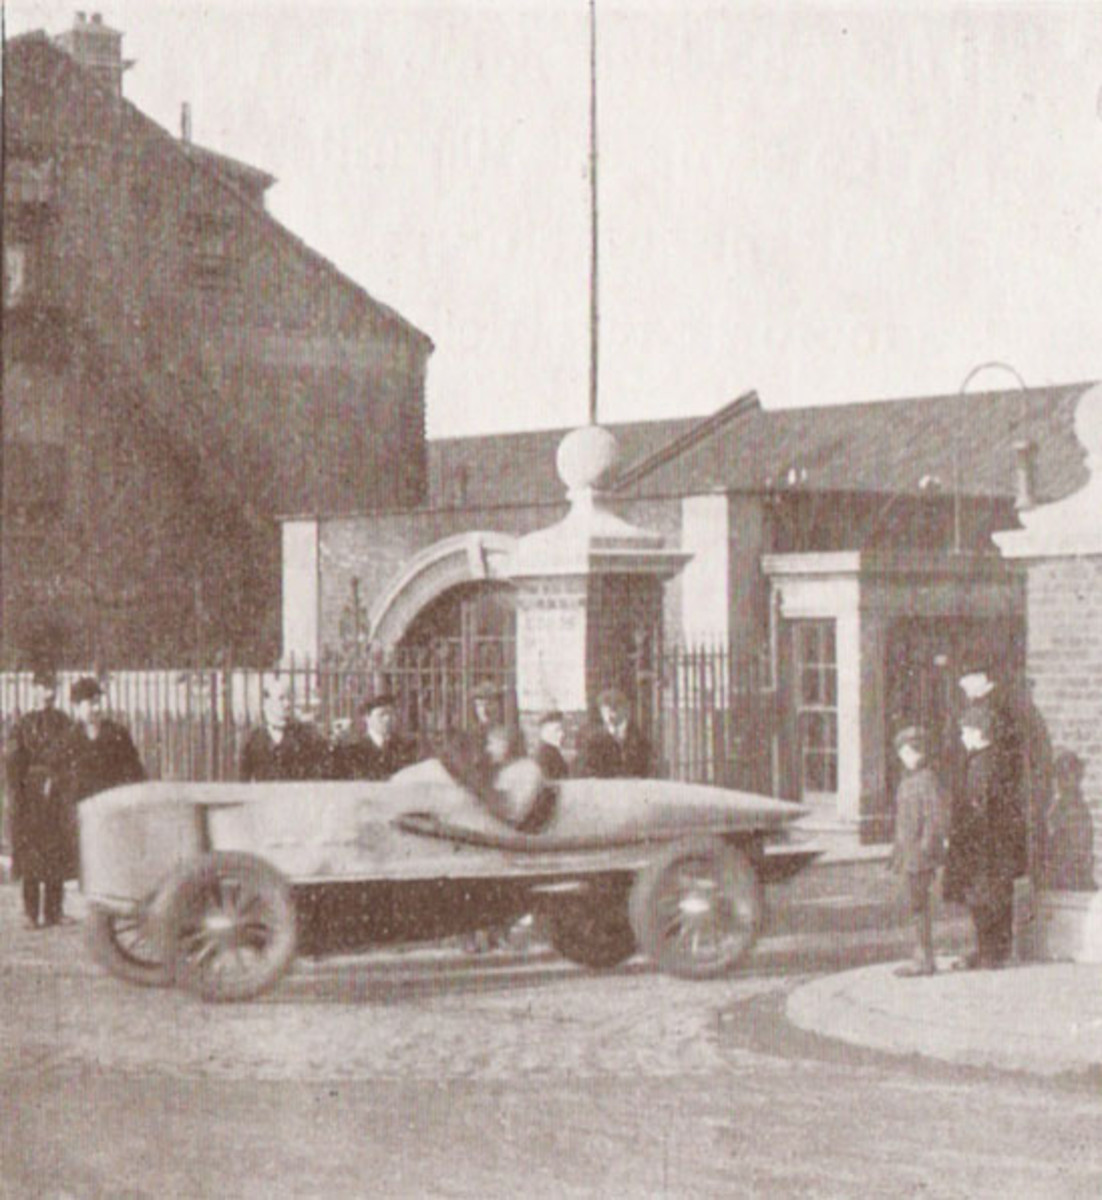 100 mph car leaving Ladbroke Hall in 1913, driven by Percy Lambert on his way to a world record and fame at Brooklands race track.